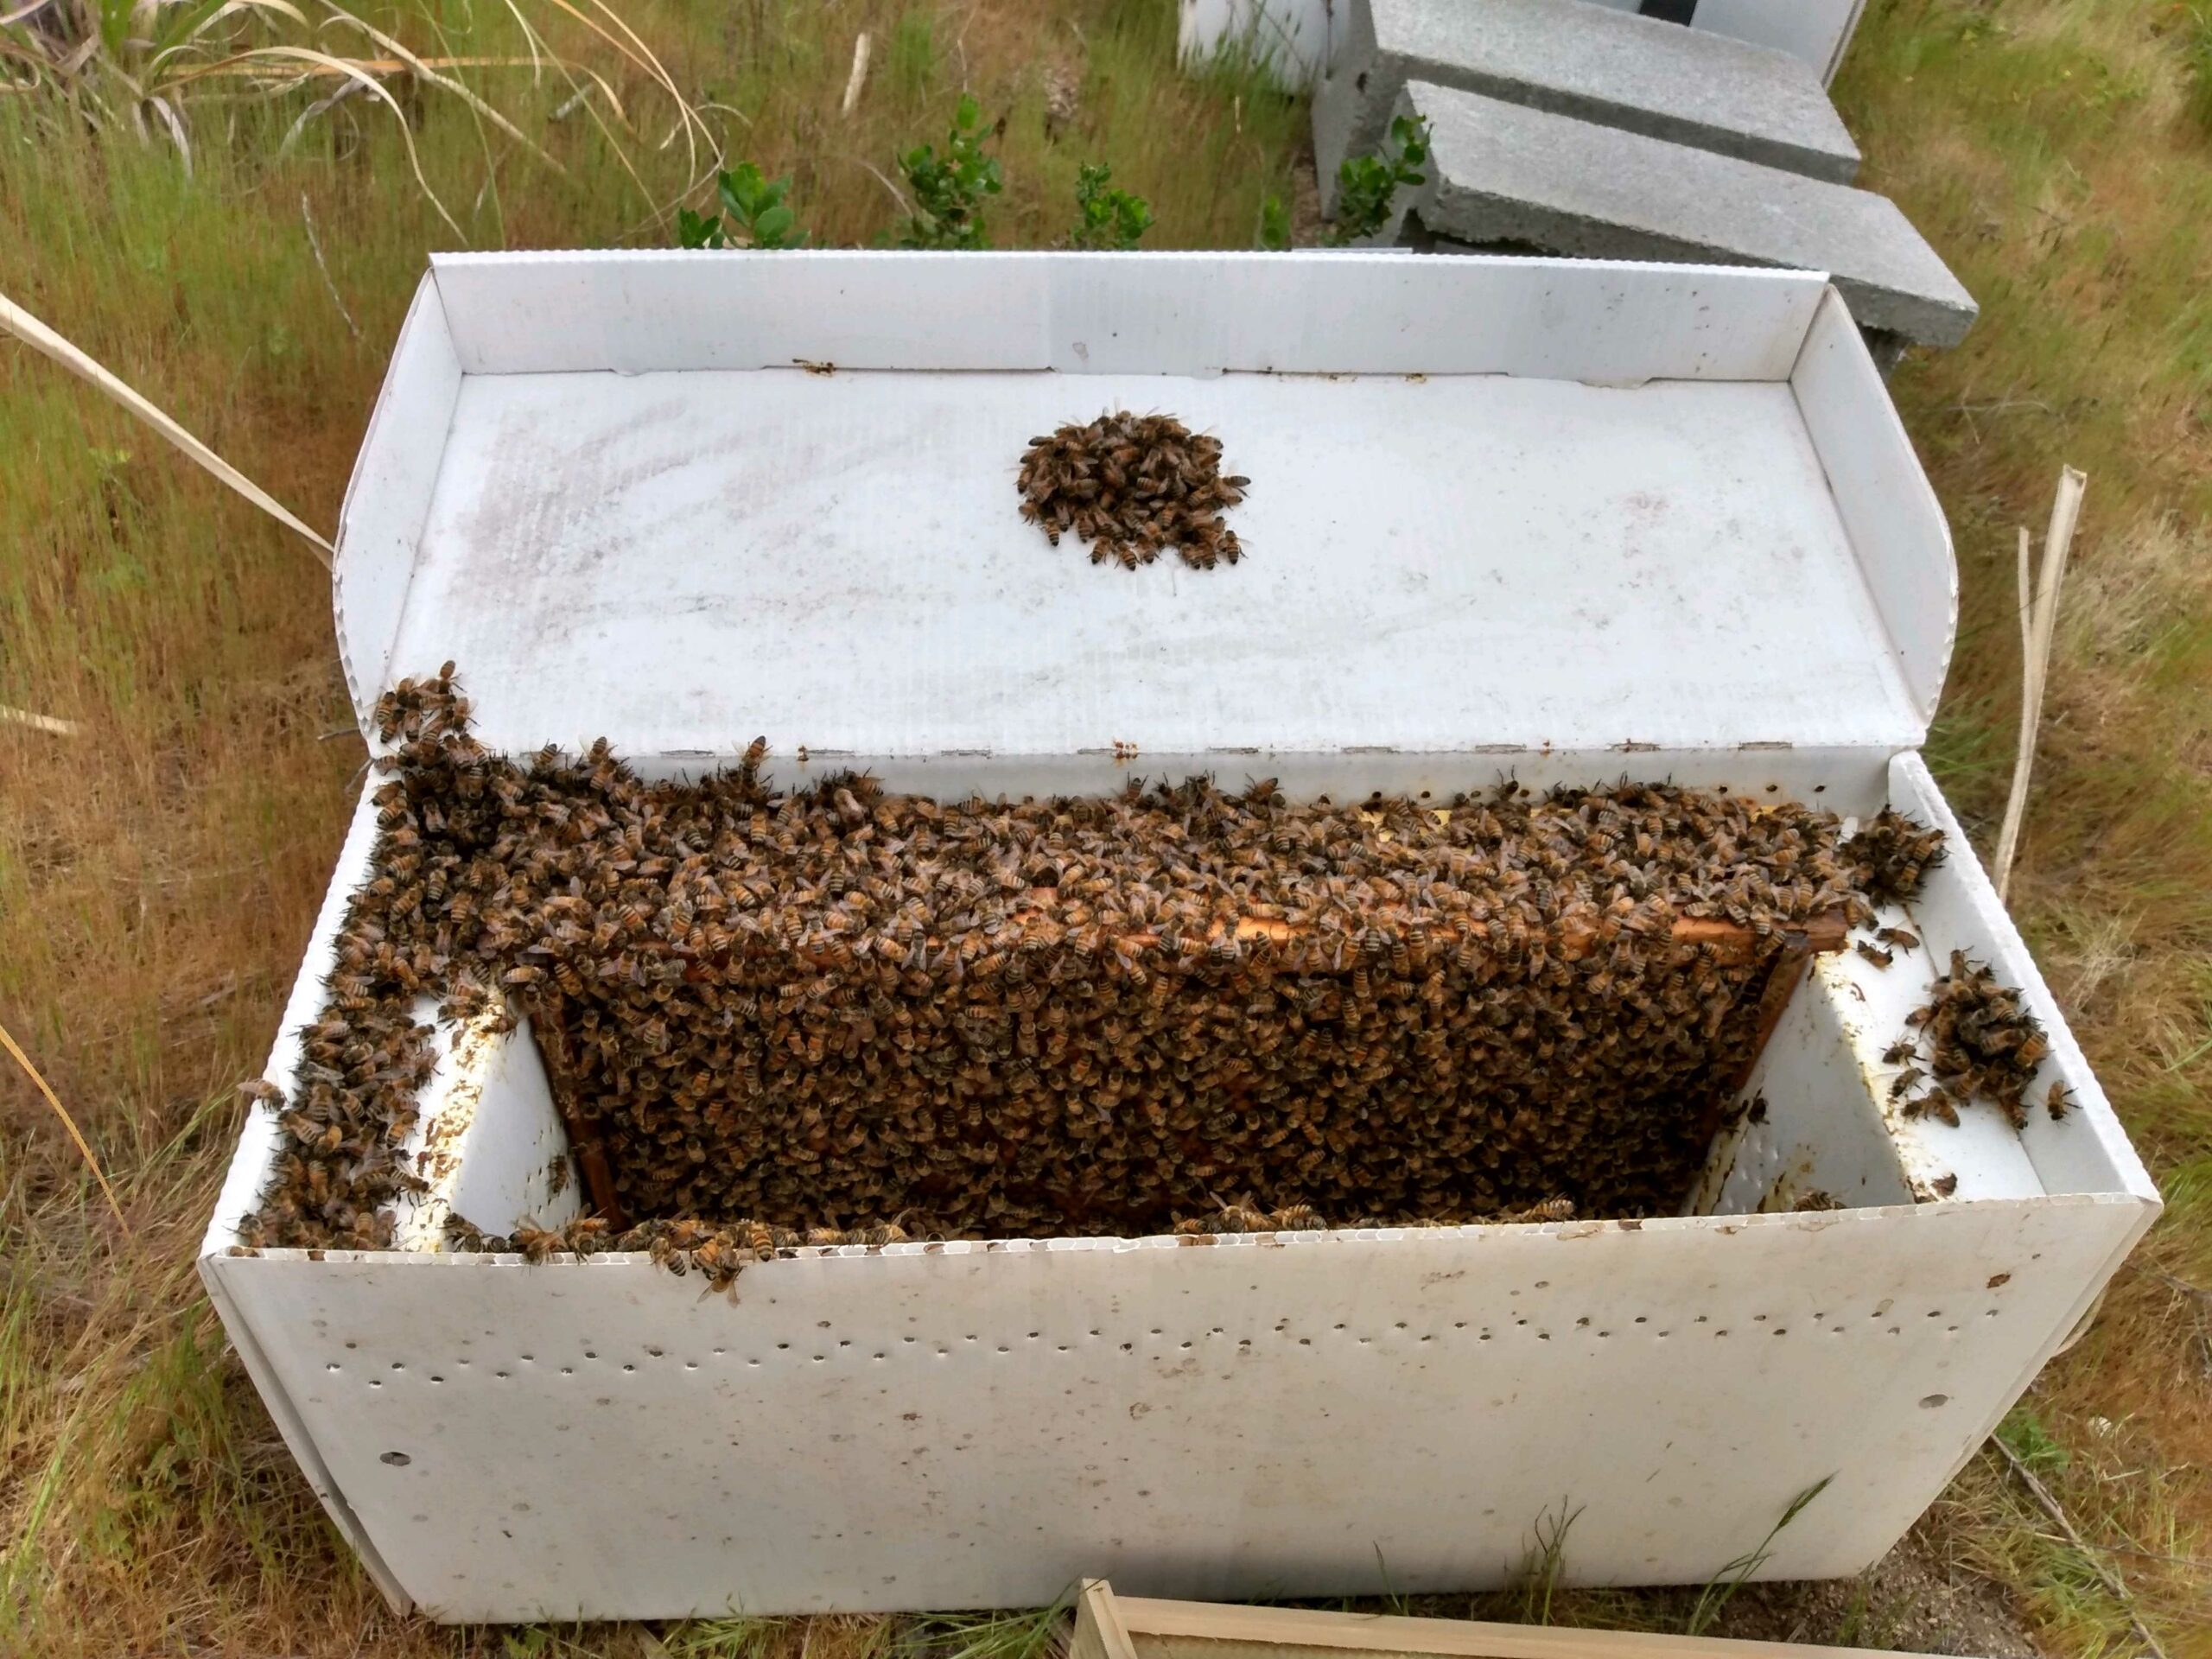 Newly caught bee swarm in a nuc box.